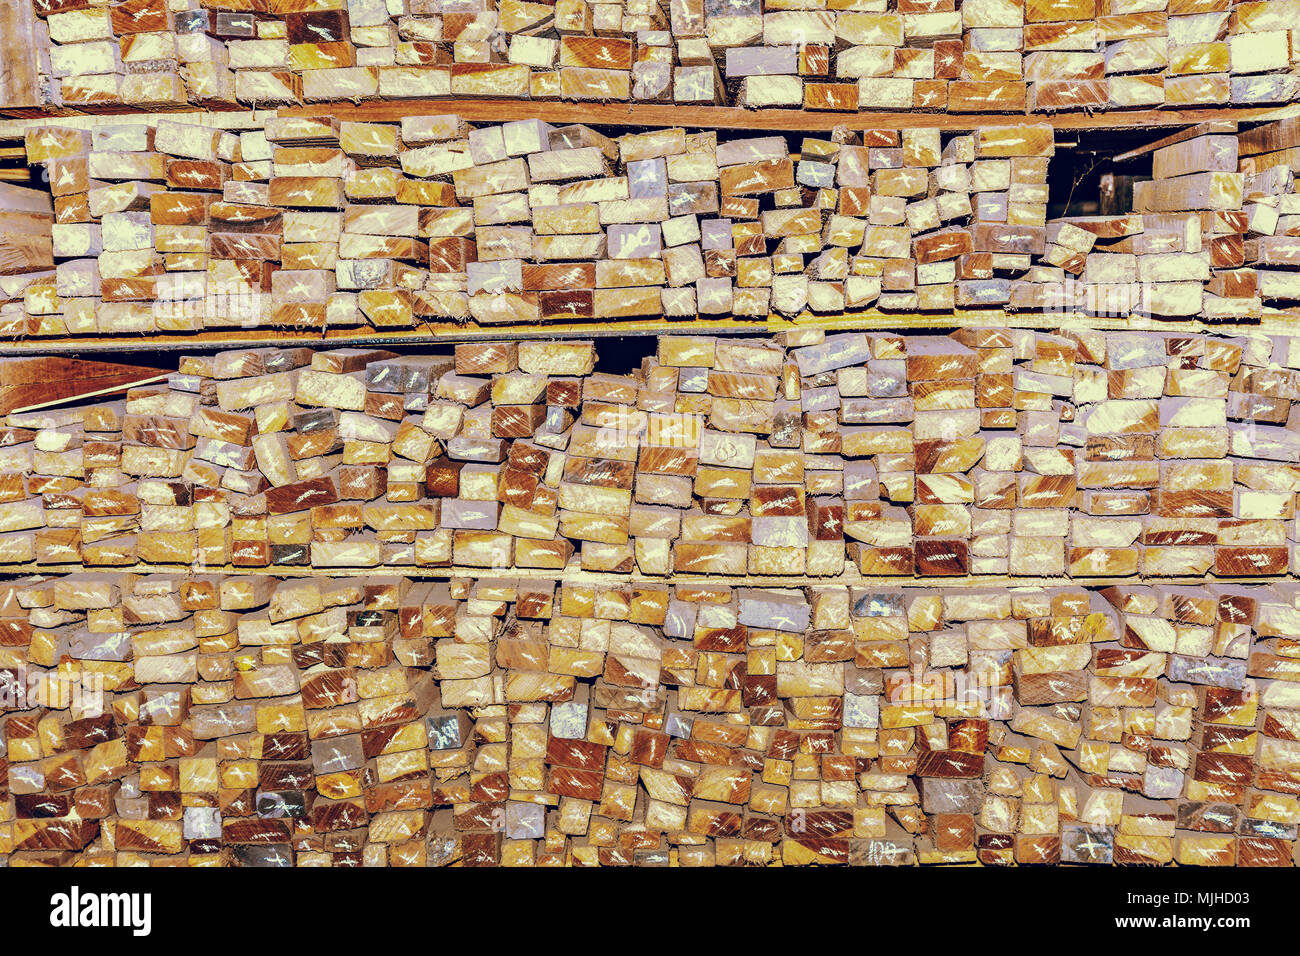 Stacked wood planks at a saw mill for texture background content. - Stock Image